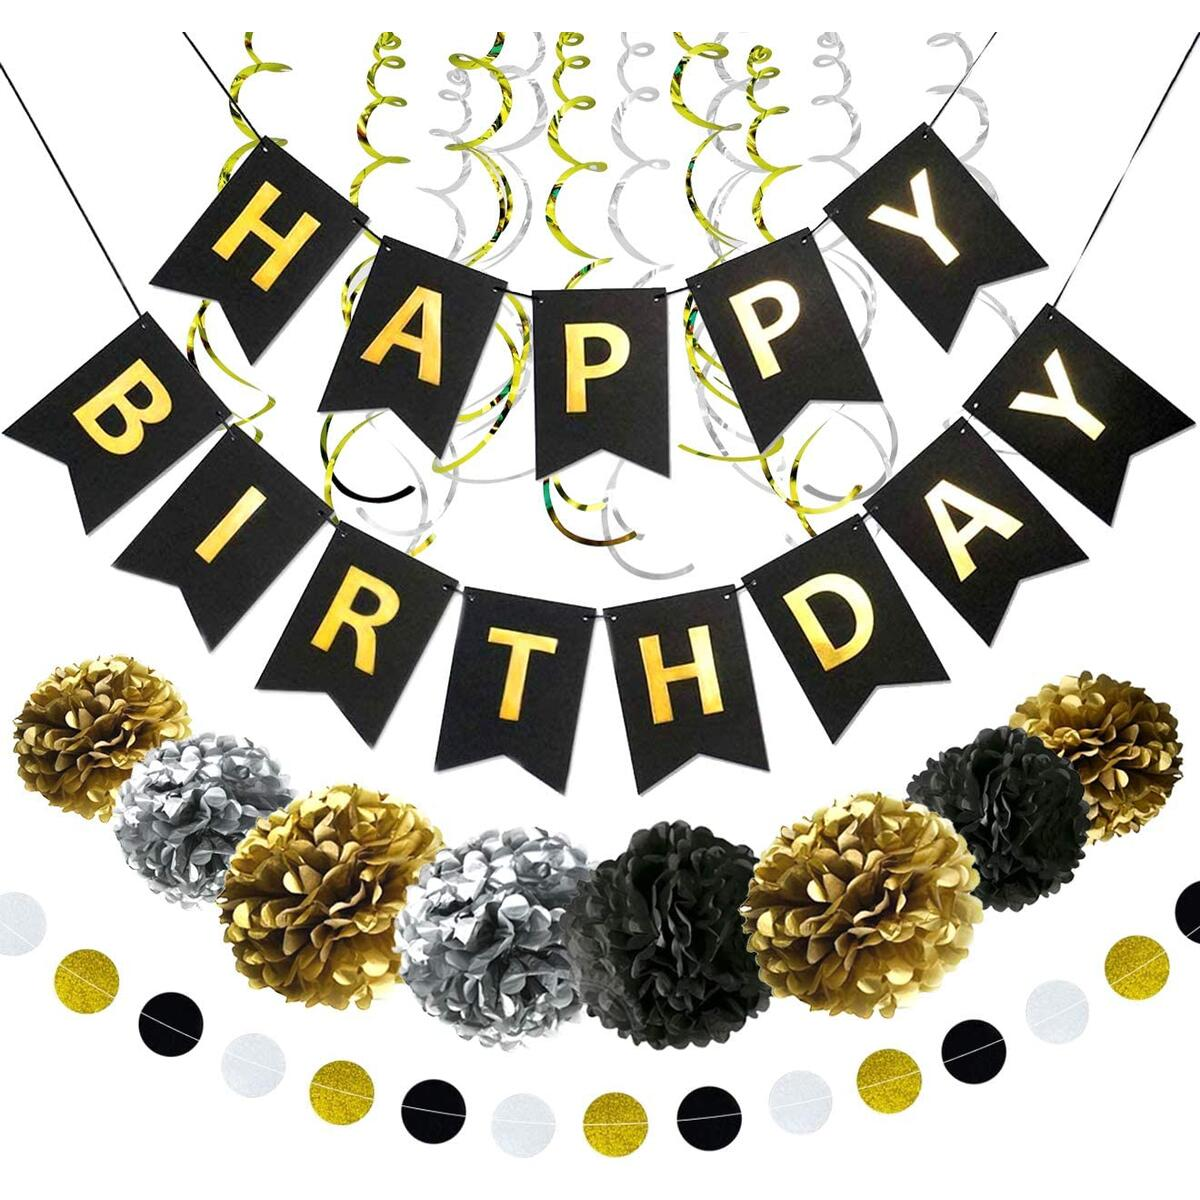 Happy Birthday Banner Party Decorations - Black Gold Decor Supplies Kit for Kids Adults - Bday Banner Garland Swirls Pom Poms Set